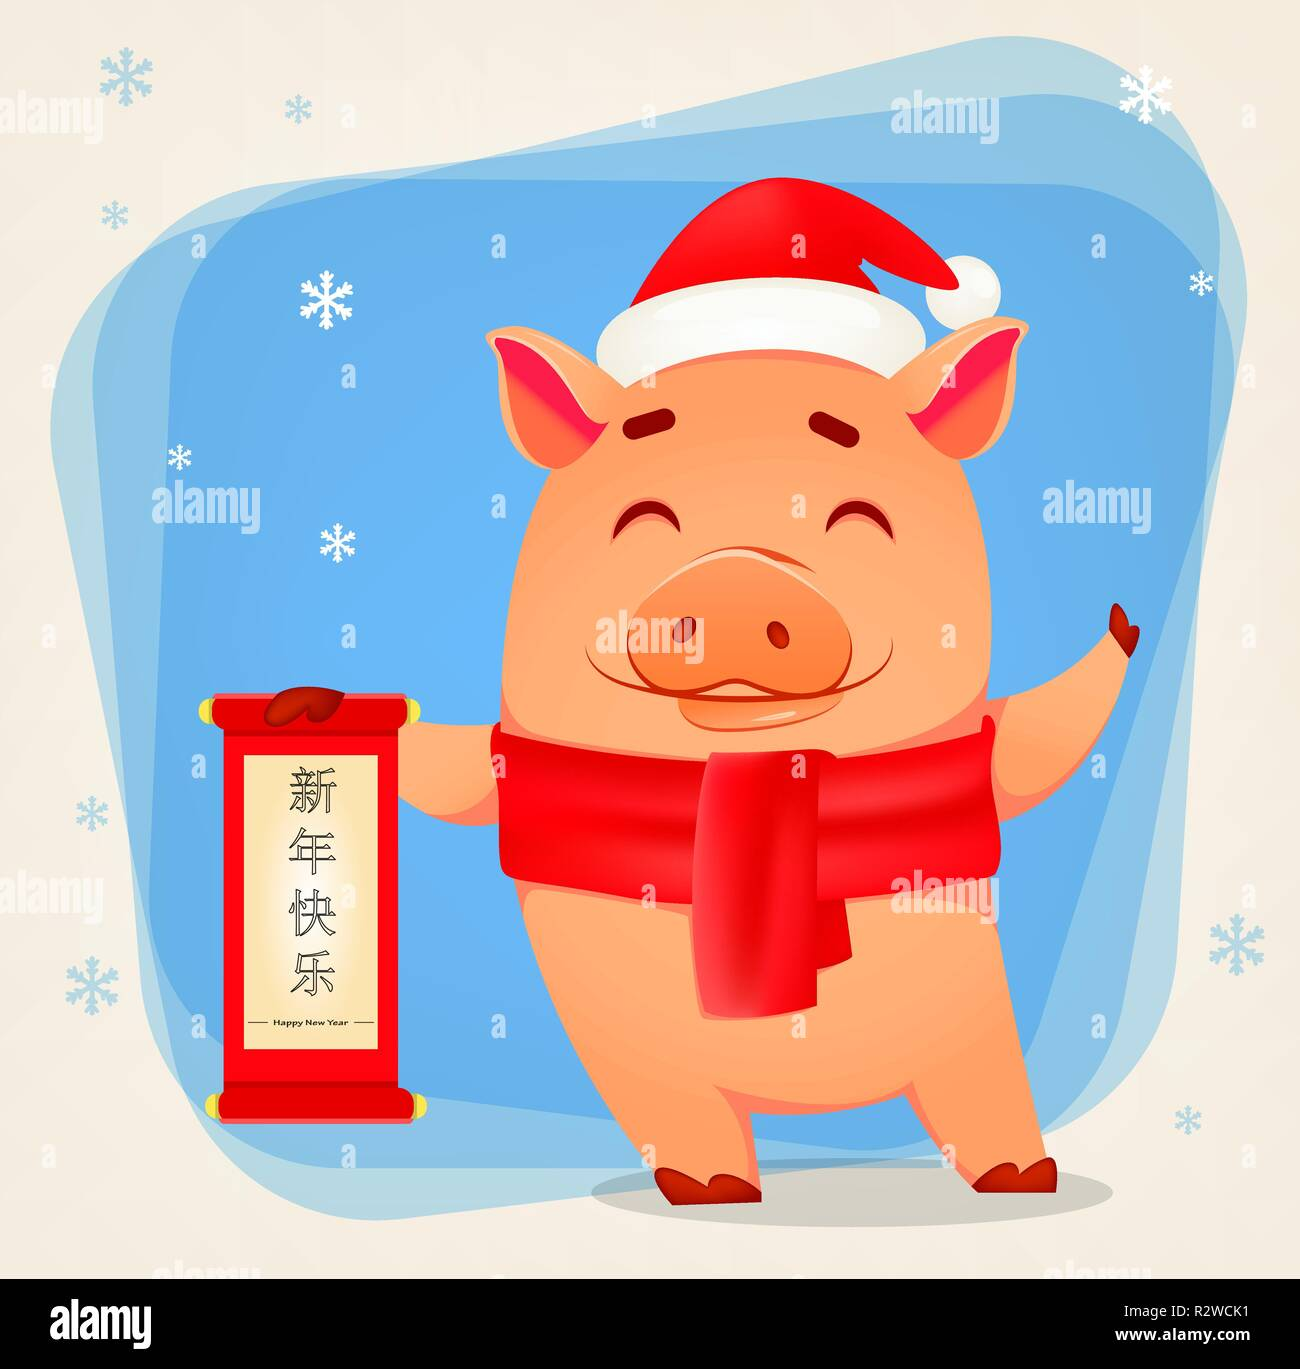 happy new year greeting card cute pig wearing santa claus hat and scarf holds scroll with greetings lettering translated as happy new year vector i